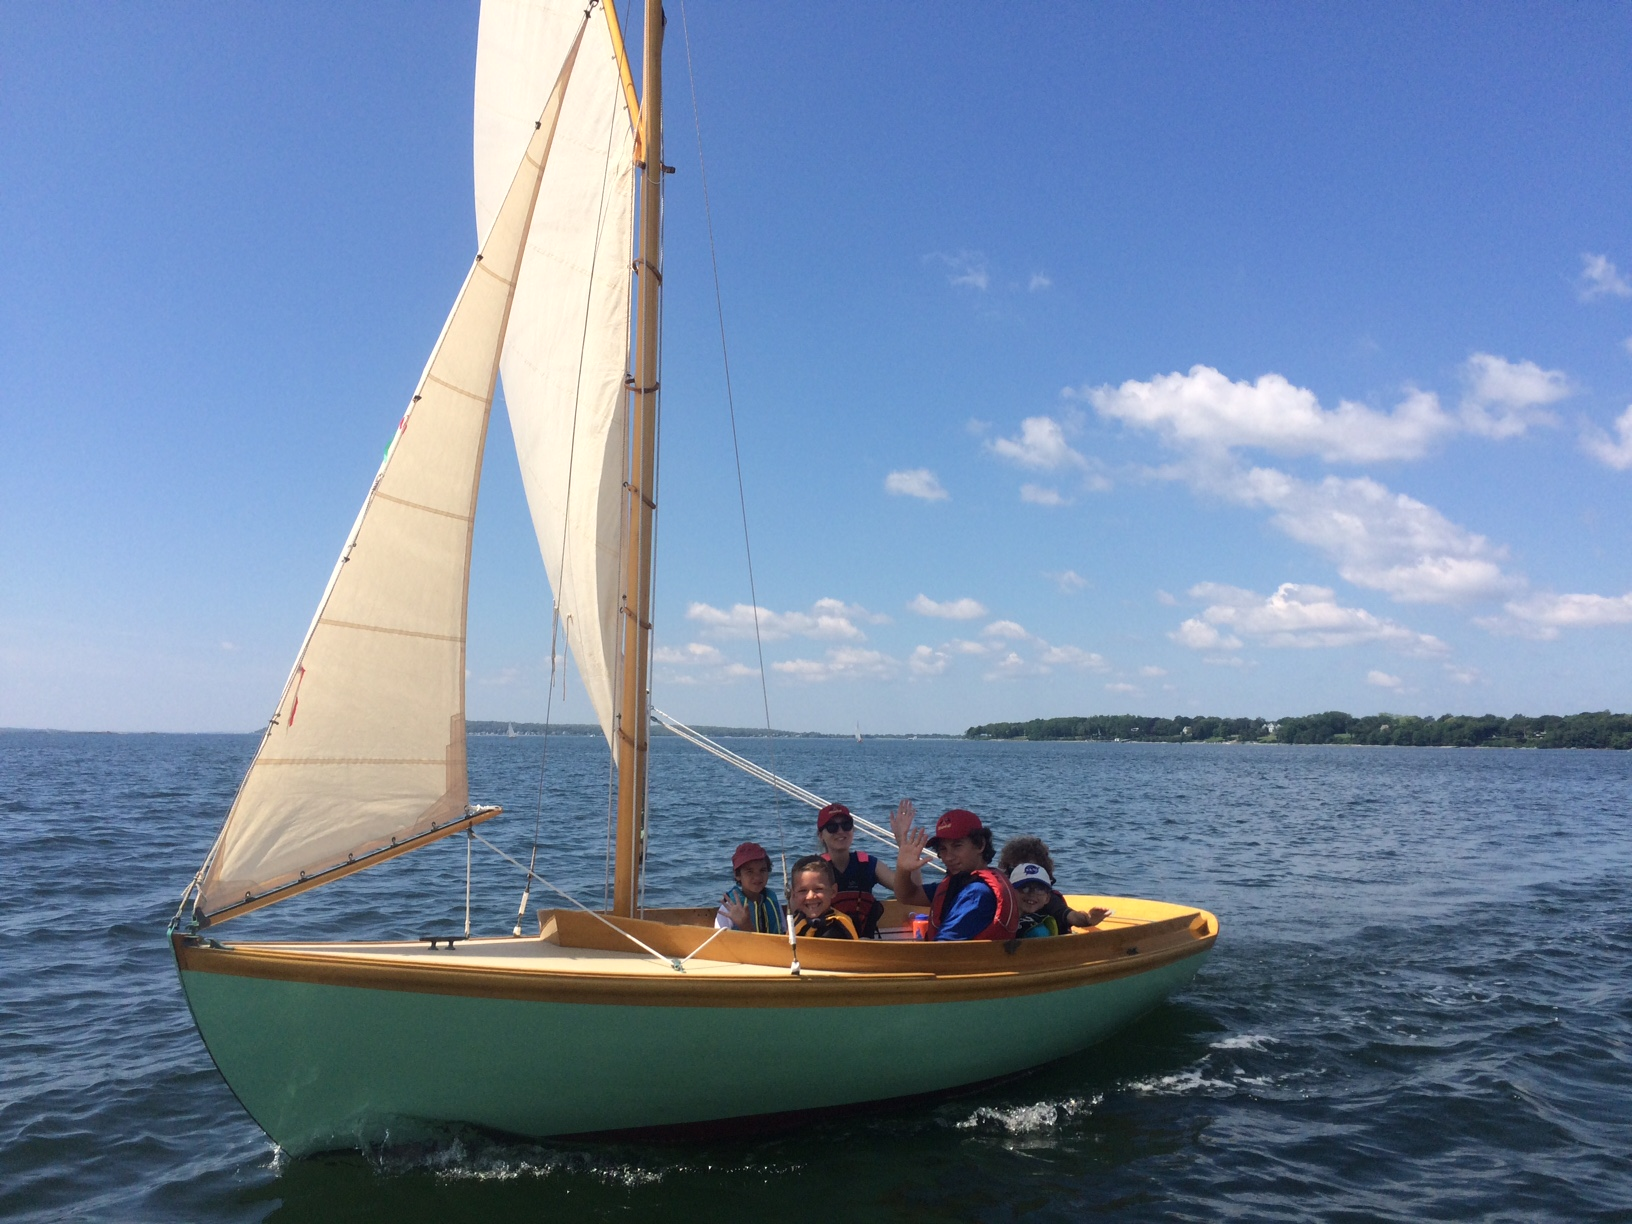 Fundraising for the Future - The mission of the Herreshoff Seamanship Program is to teach the art of seamanship and the principles of sailing, with an emphasis on excellent instruction, as well as the design, beauty, and unique features of these classic vessels.